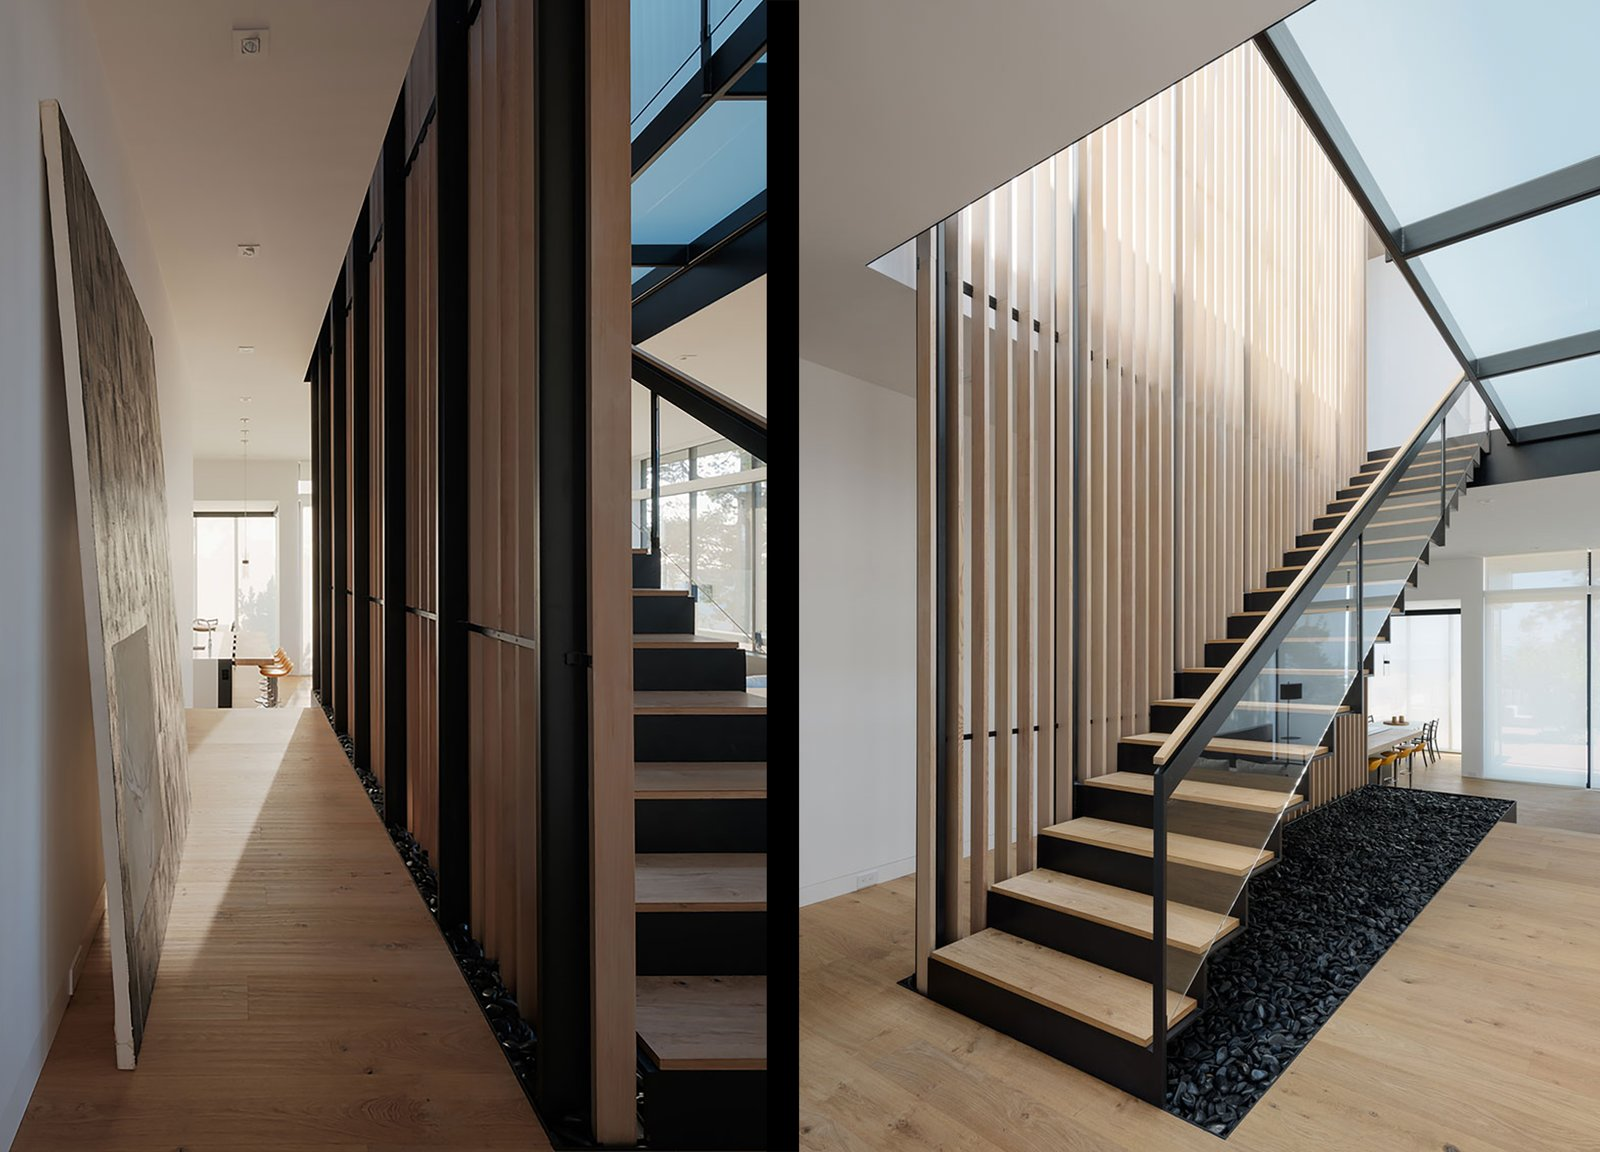 Staircase, Metal Tread, Wood Tread, Metal Railing, Wood Railing, and Glass Railing Main Stair at Slat Screen  Dolores Heights Residence I by John Maniscalco Architecture